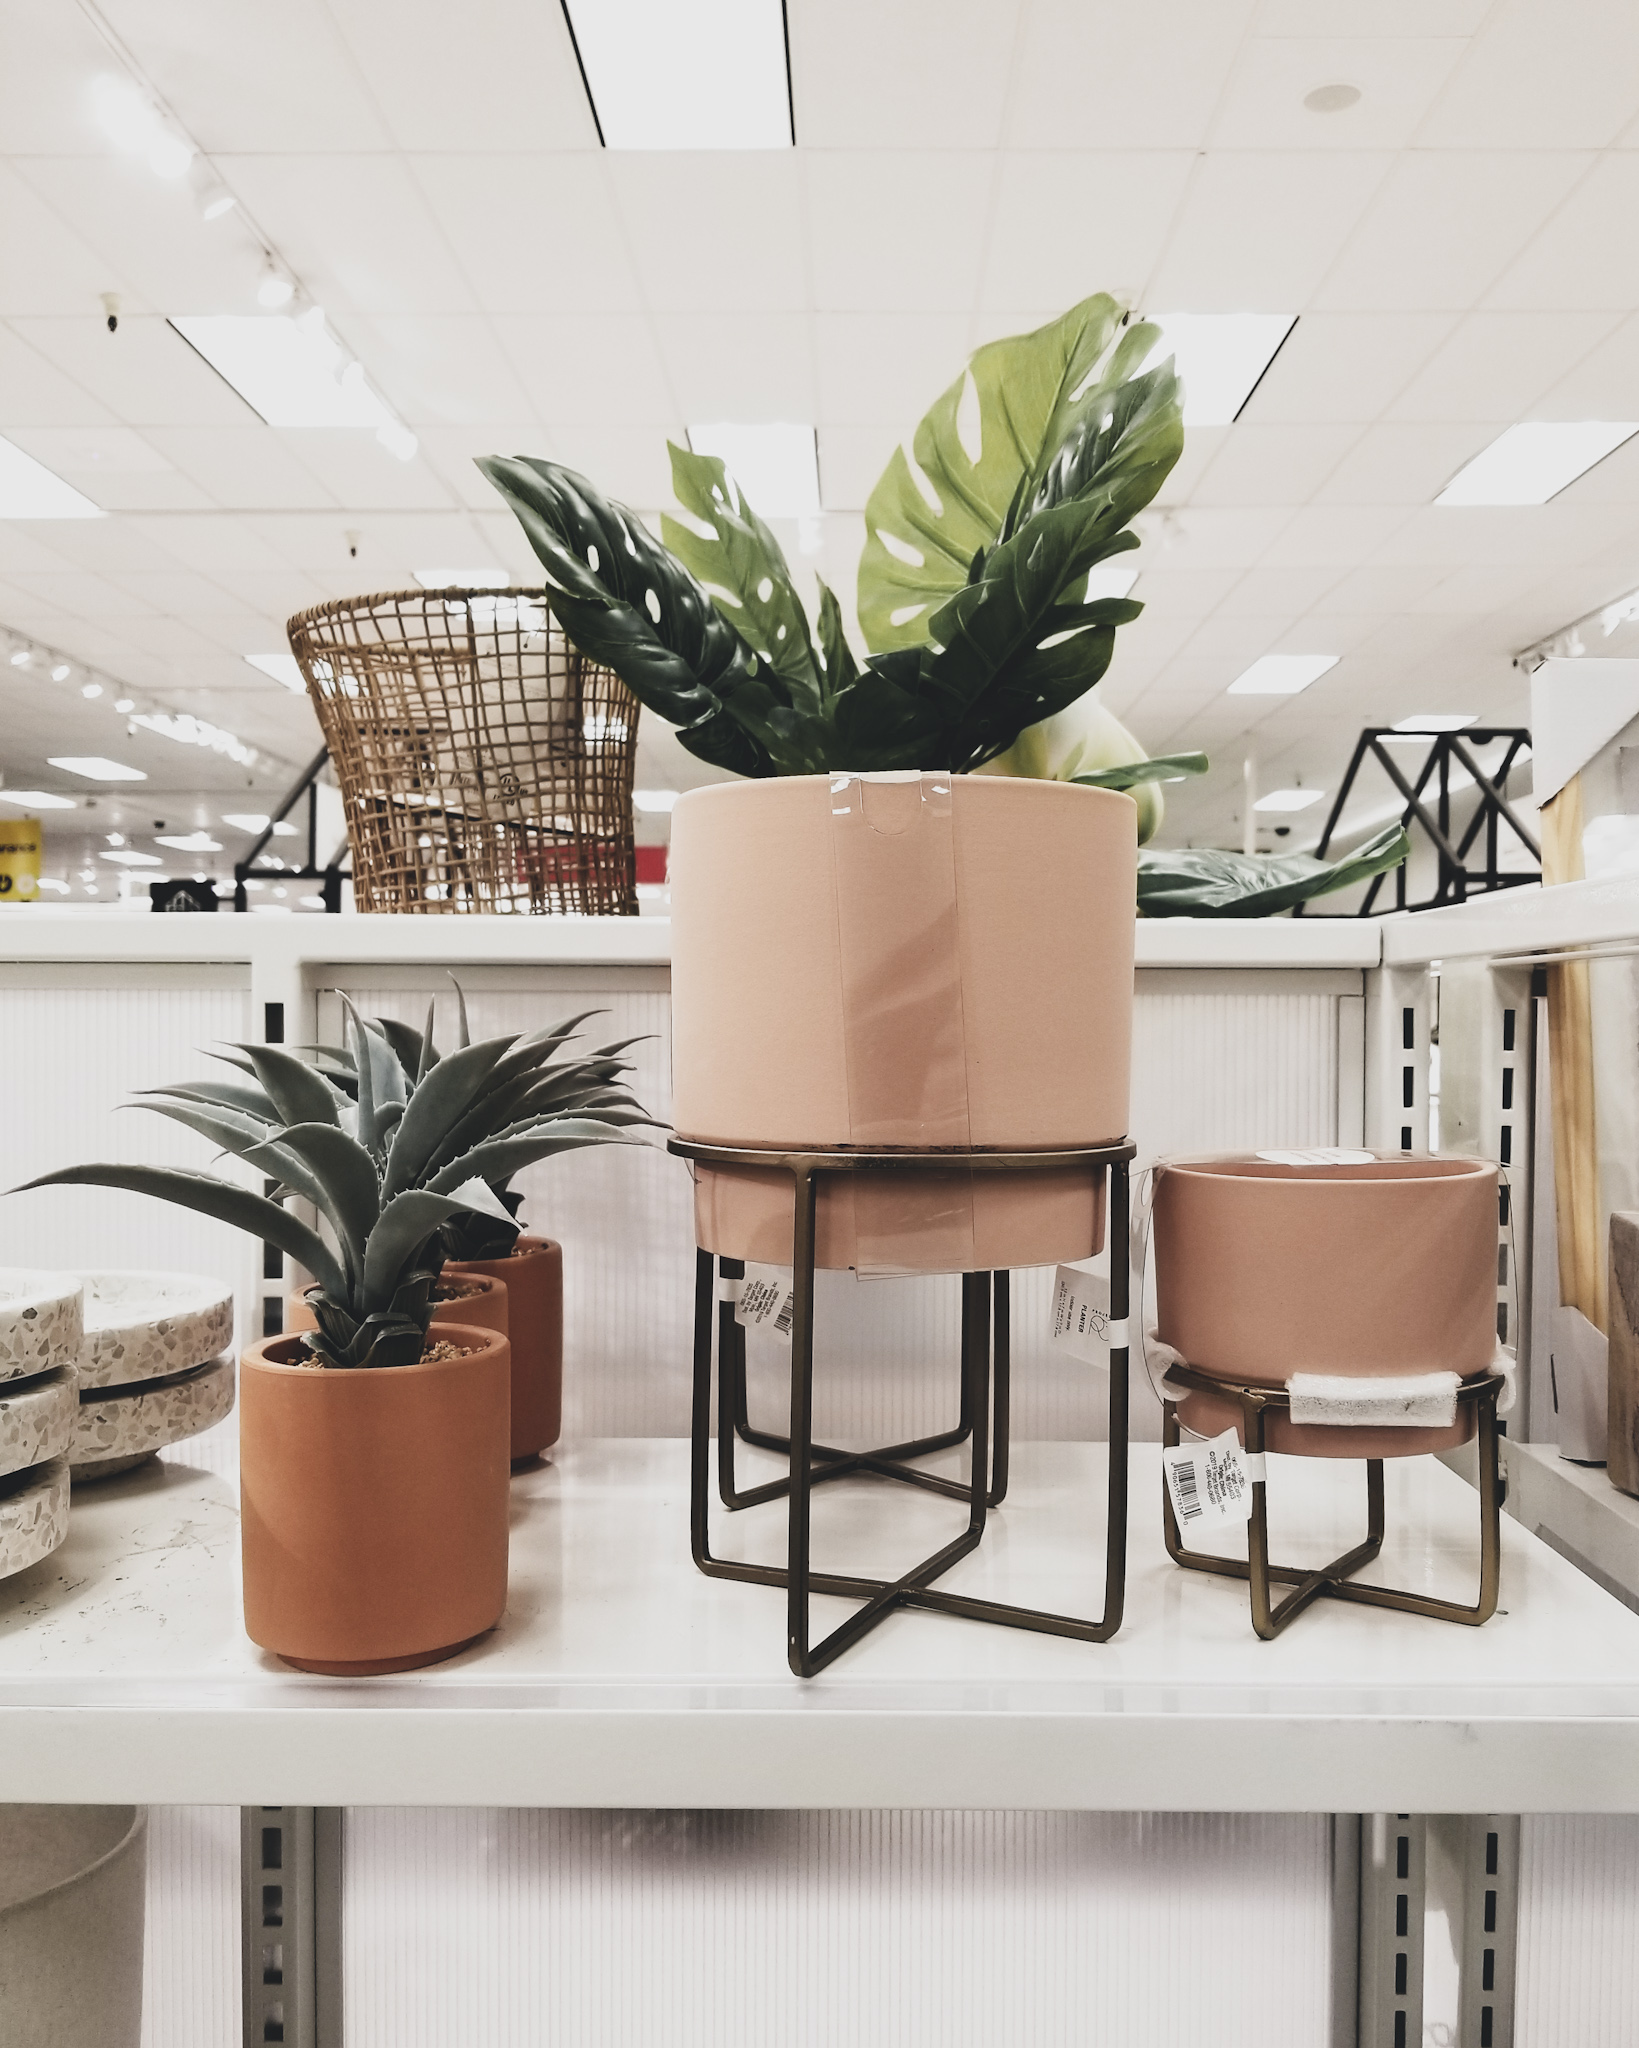 Target Fave Finds This Week Mid-Century Modern Planters